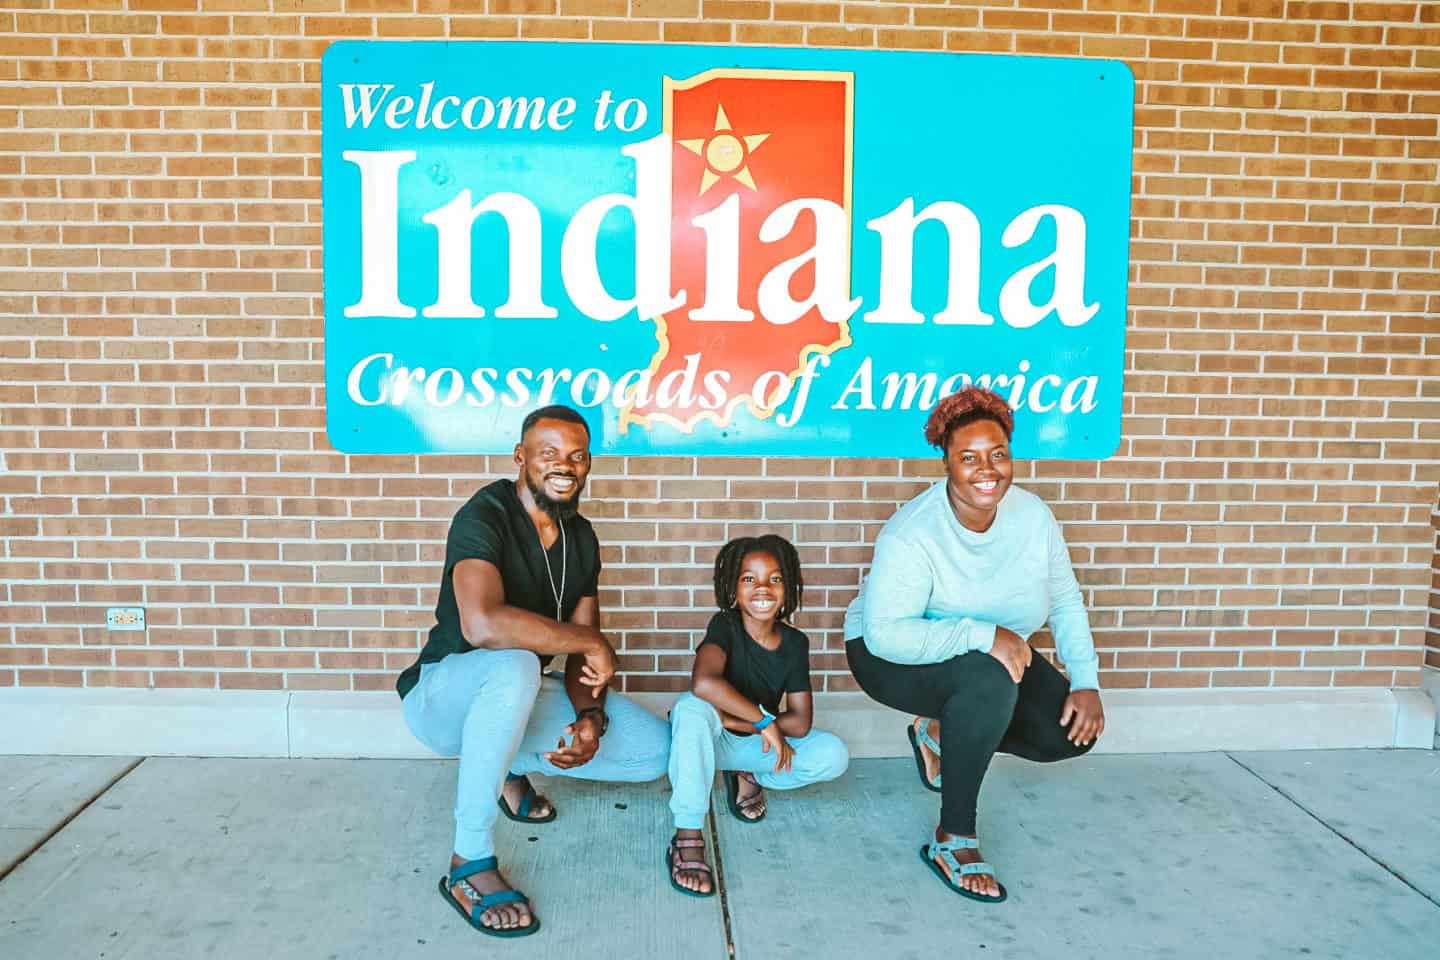 20 Things to Do in Indianapolis, Indiana With or Without Kids